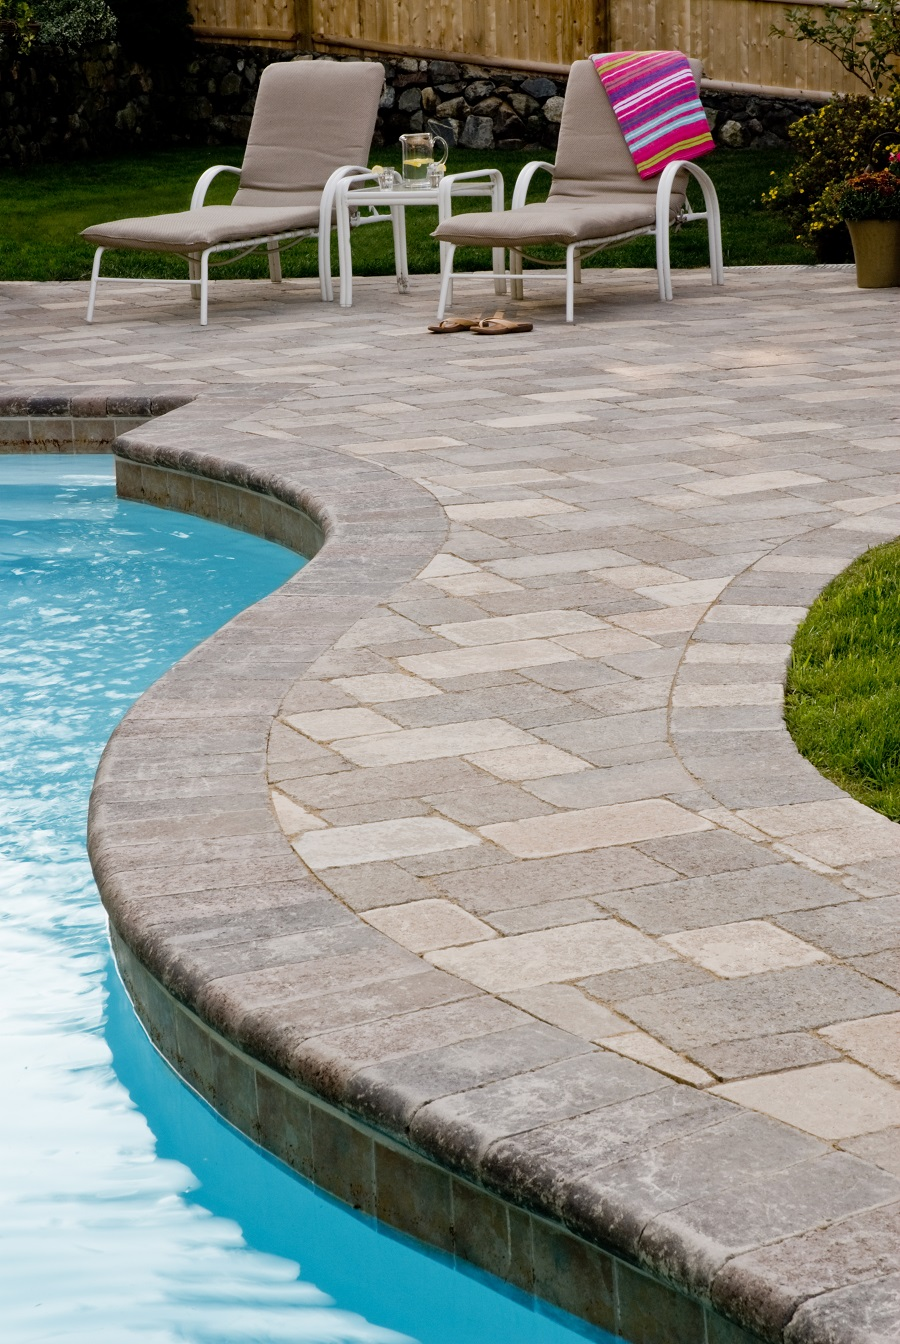 Pool deck with durable patio pavers in Arlington, MA